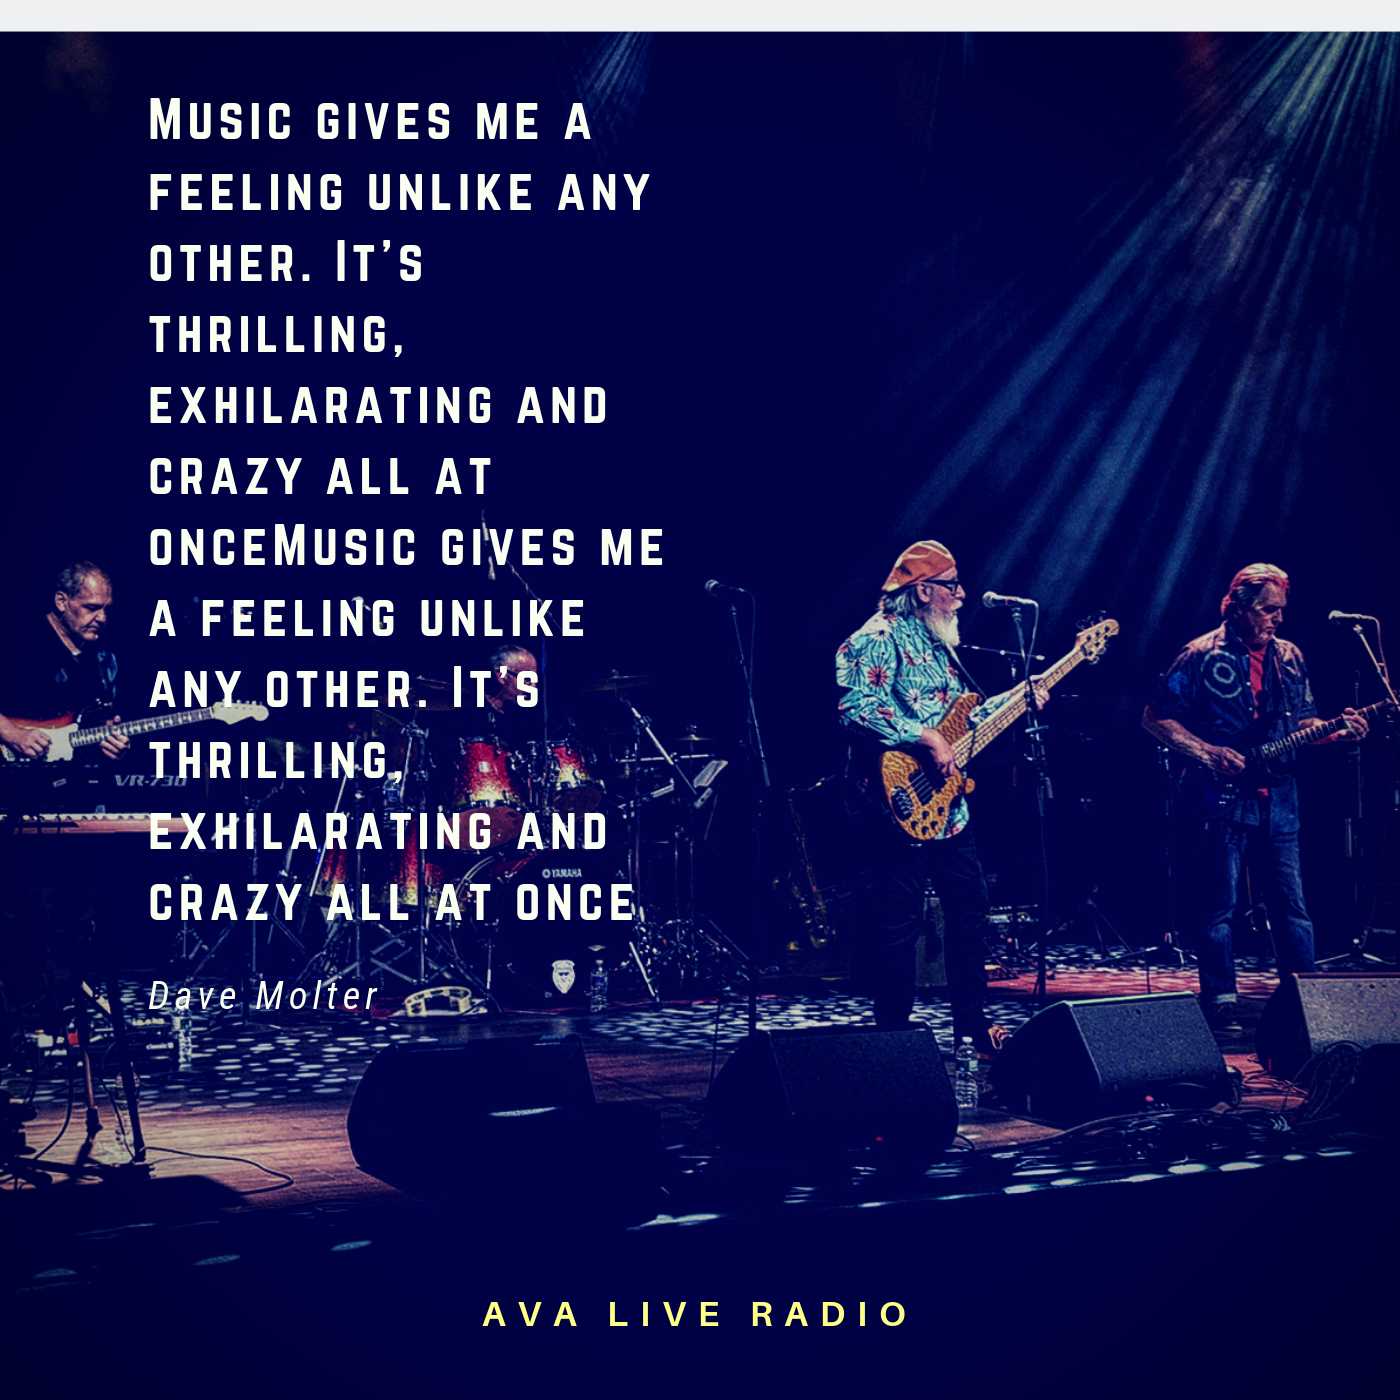 Dave Molter avaliveradio music quotes.png